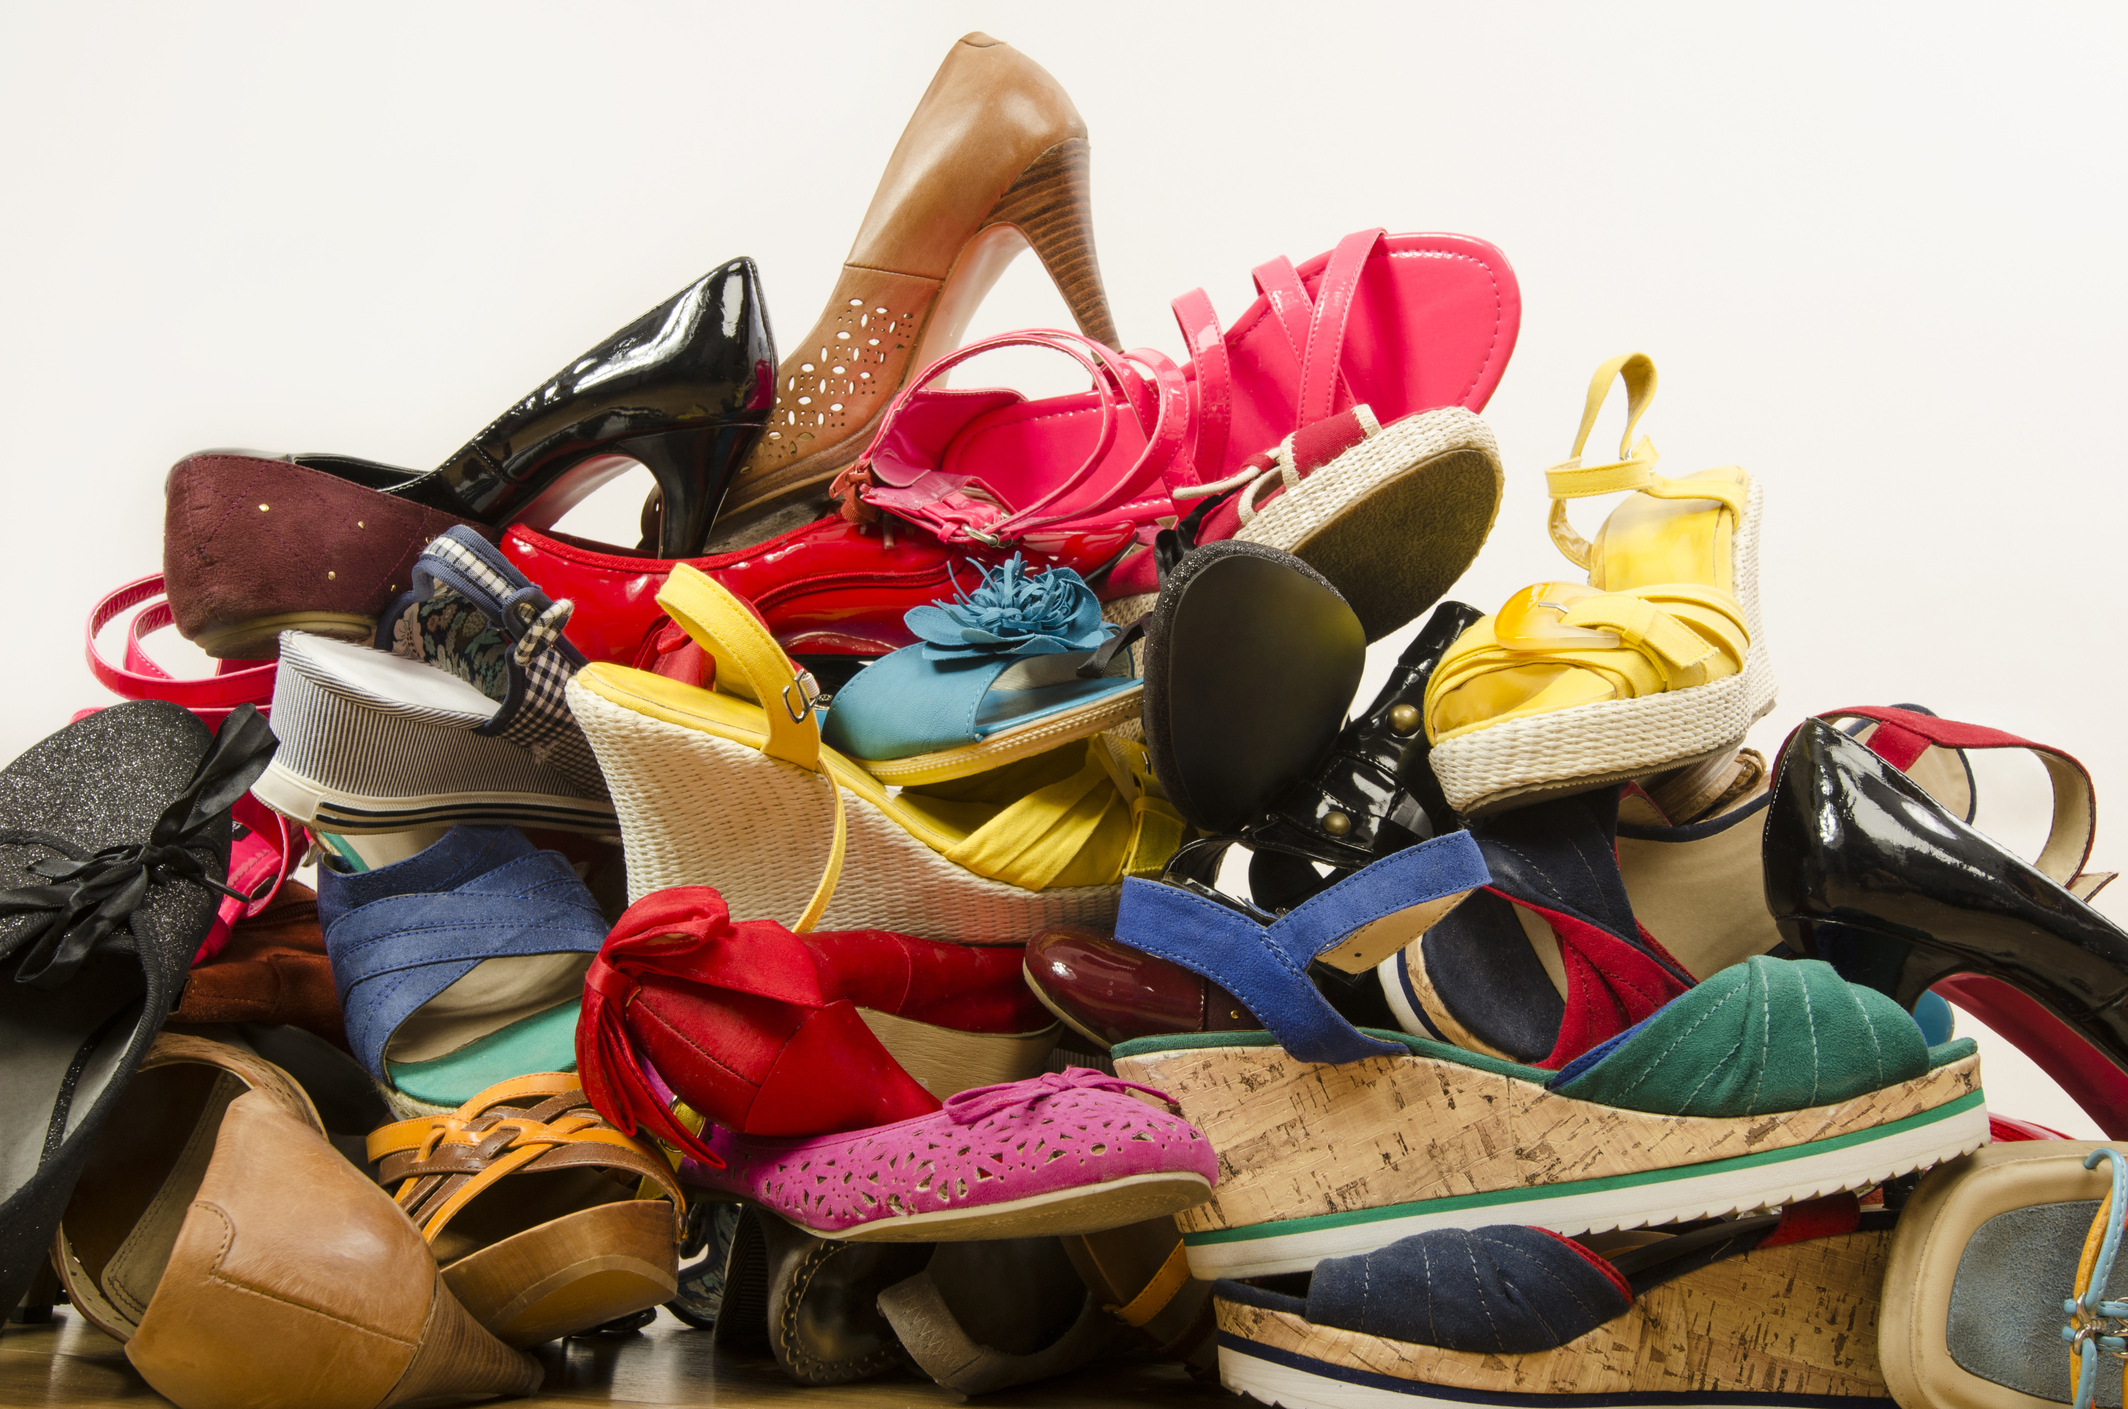 footwear - With all that extra space you have in the car you can get a bit more frivolous in your packing. Hiking boots, rain boots, runners, some stylish night out duds and flip flops (that hostel shower!), pack up the car with all the shoes you own and keep your feet happy!